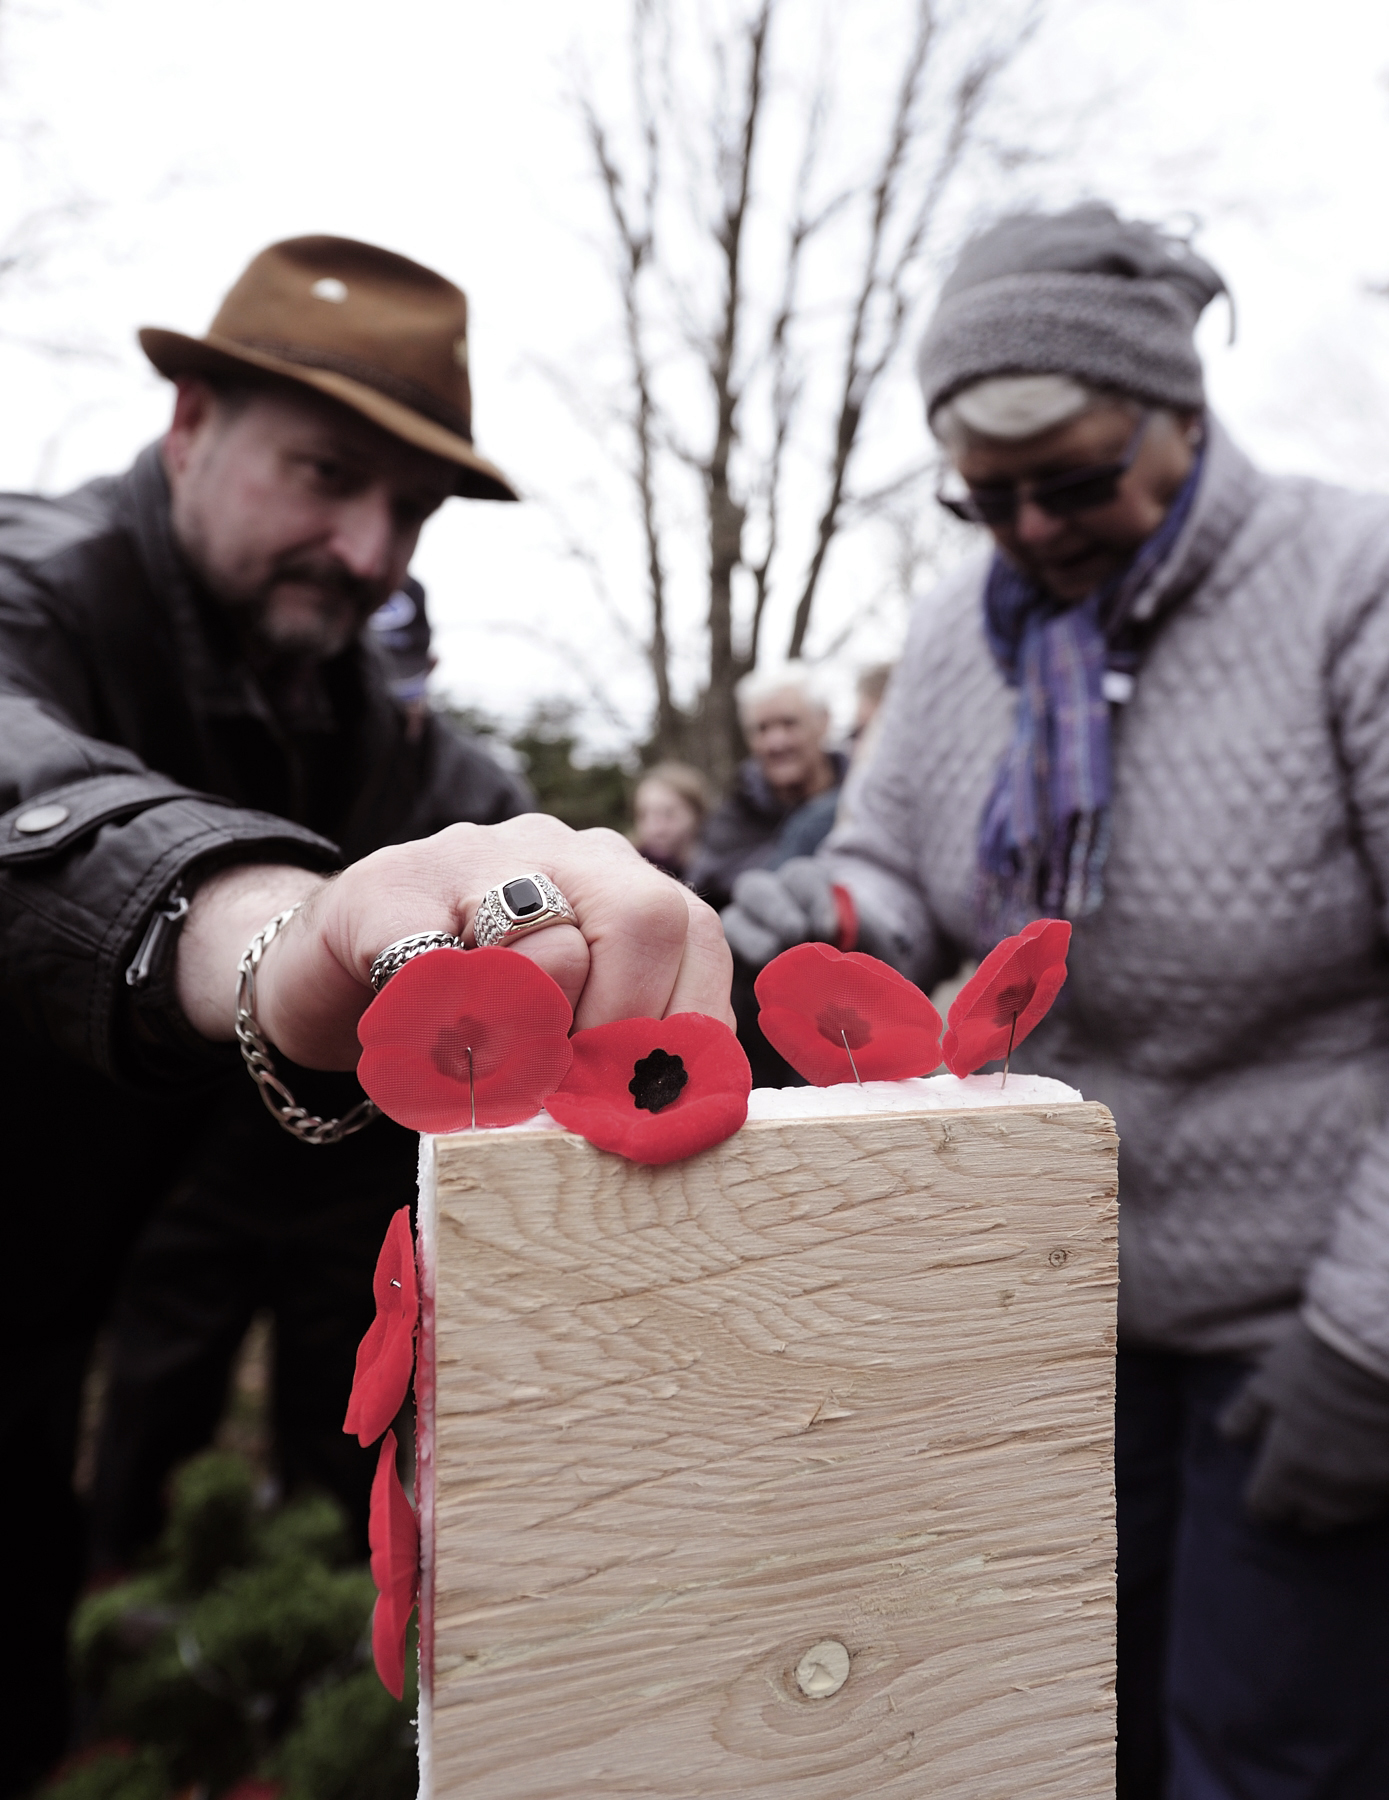 Attendees of the Courcelette Branch #58 Legion Remembrance Day ceremony pin their poppies to the cross at the cenotaph following the ceremony held at Sheet Harbour Memorial Hospital in Sheet Harbour, Nova Scotia, on November 11, 2015. PHOTO: Corporal Felicia Ogunniya